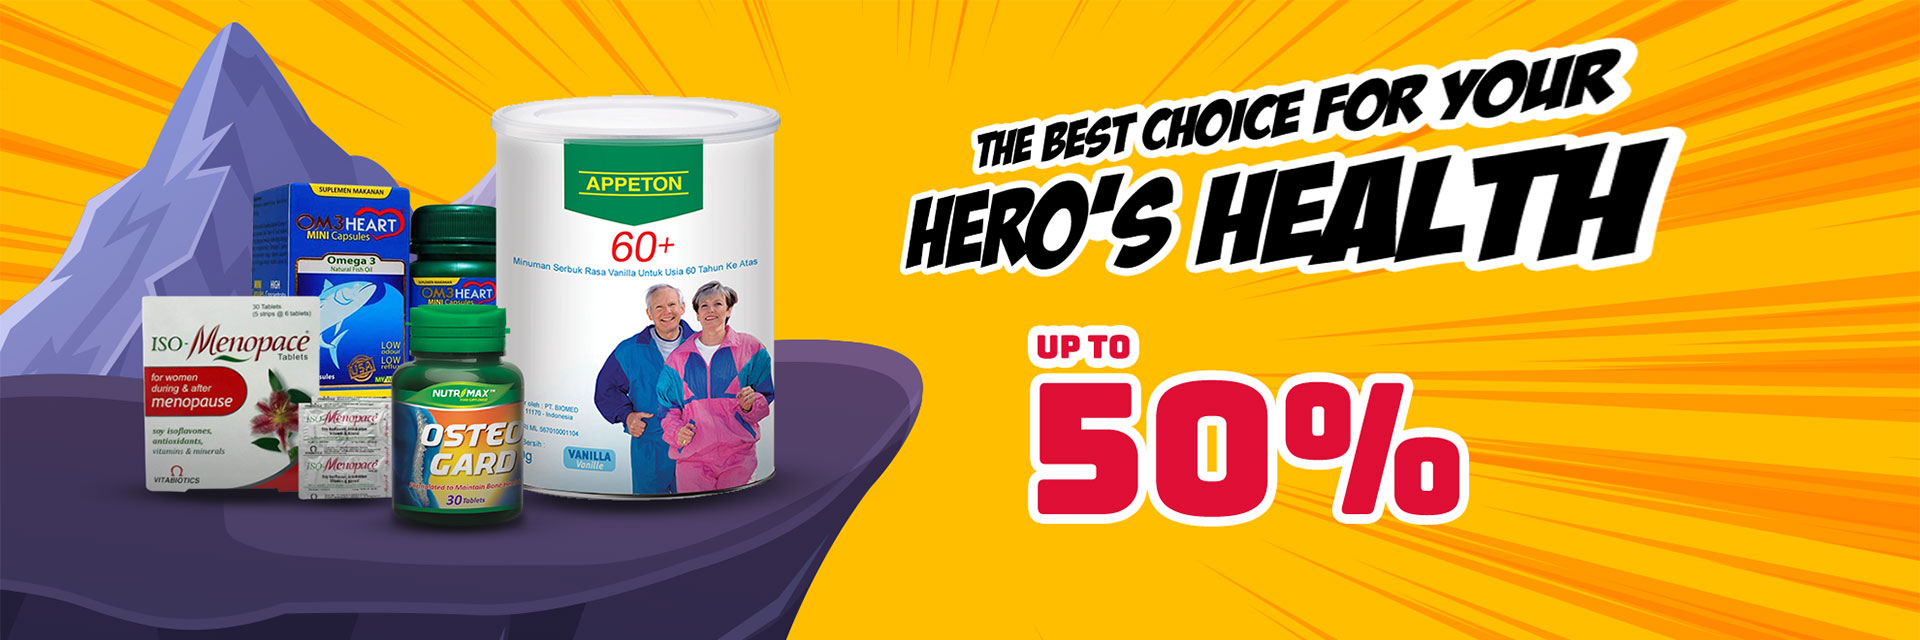 Best  For Your Healthier Heroes